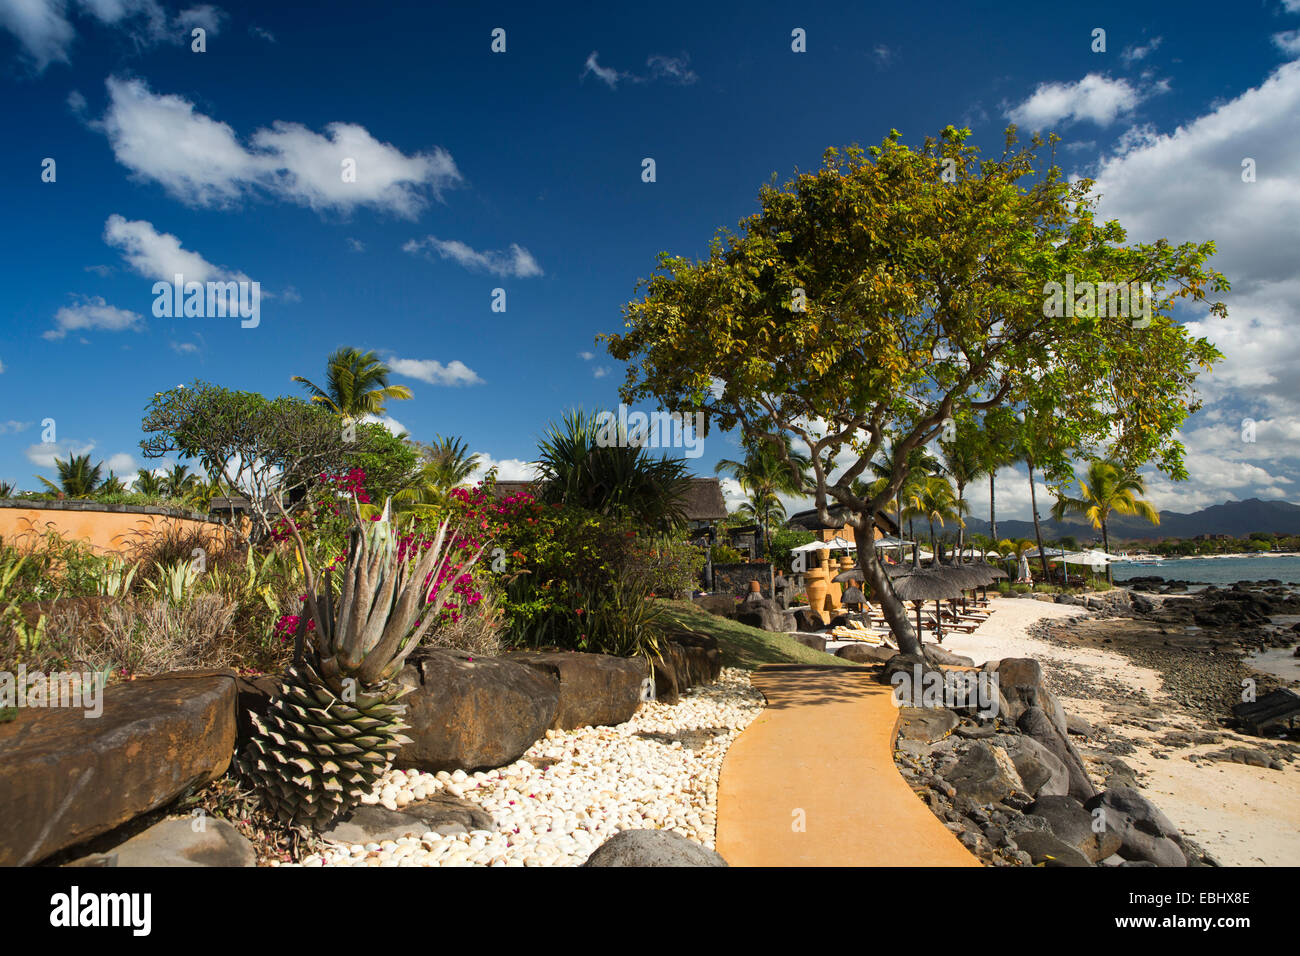 Mauritius, Pointe aux Piments, Turtle Bay, Oberoi Resort seafront garden - Stock Image